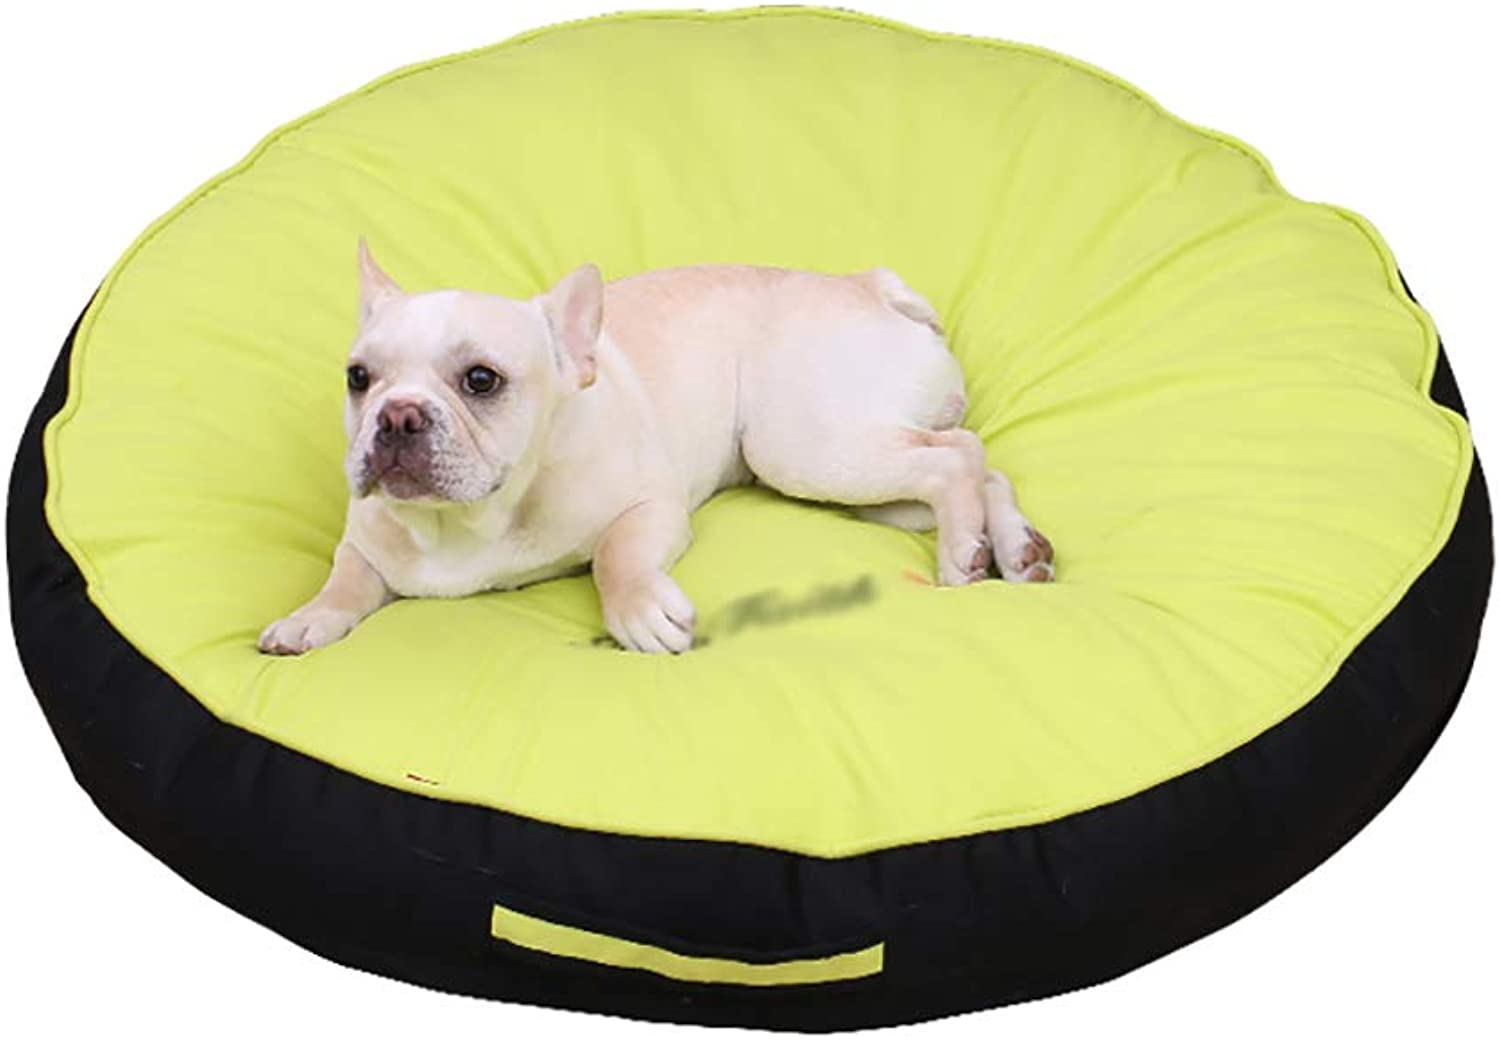 Pet house kennel Small dog Medium dog Large dog Washable pet nest Pet mat Pet bed Ground pad soft Comfortable Four seasons available (color   A, Size   60  60  10)